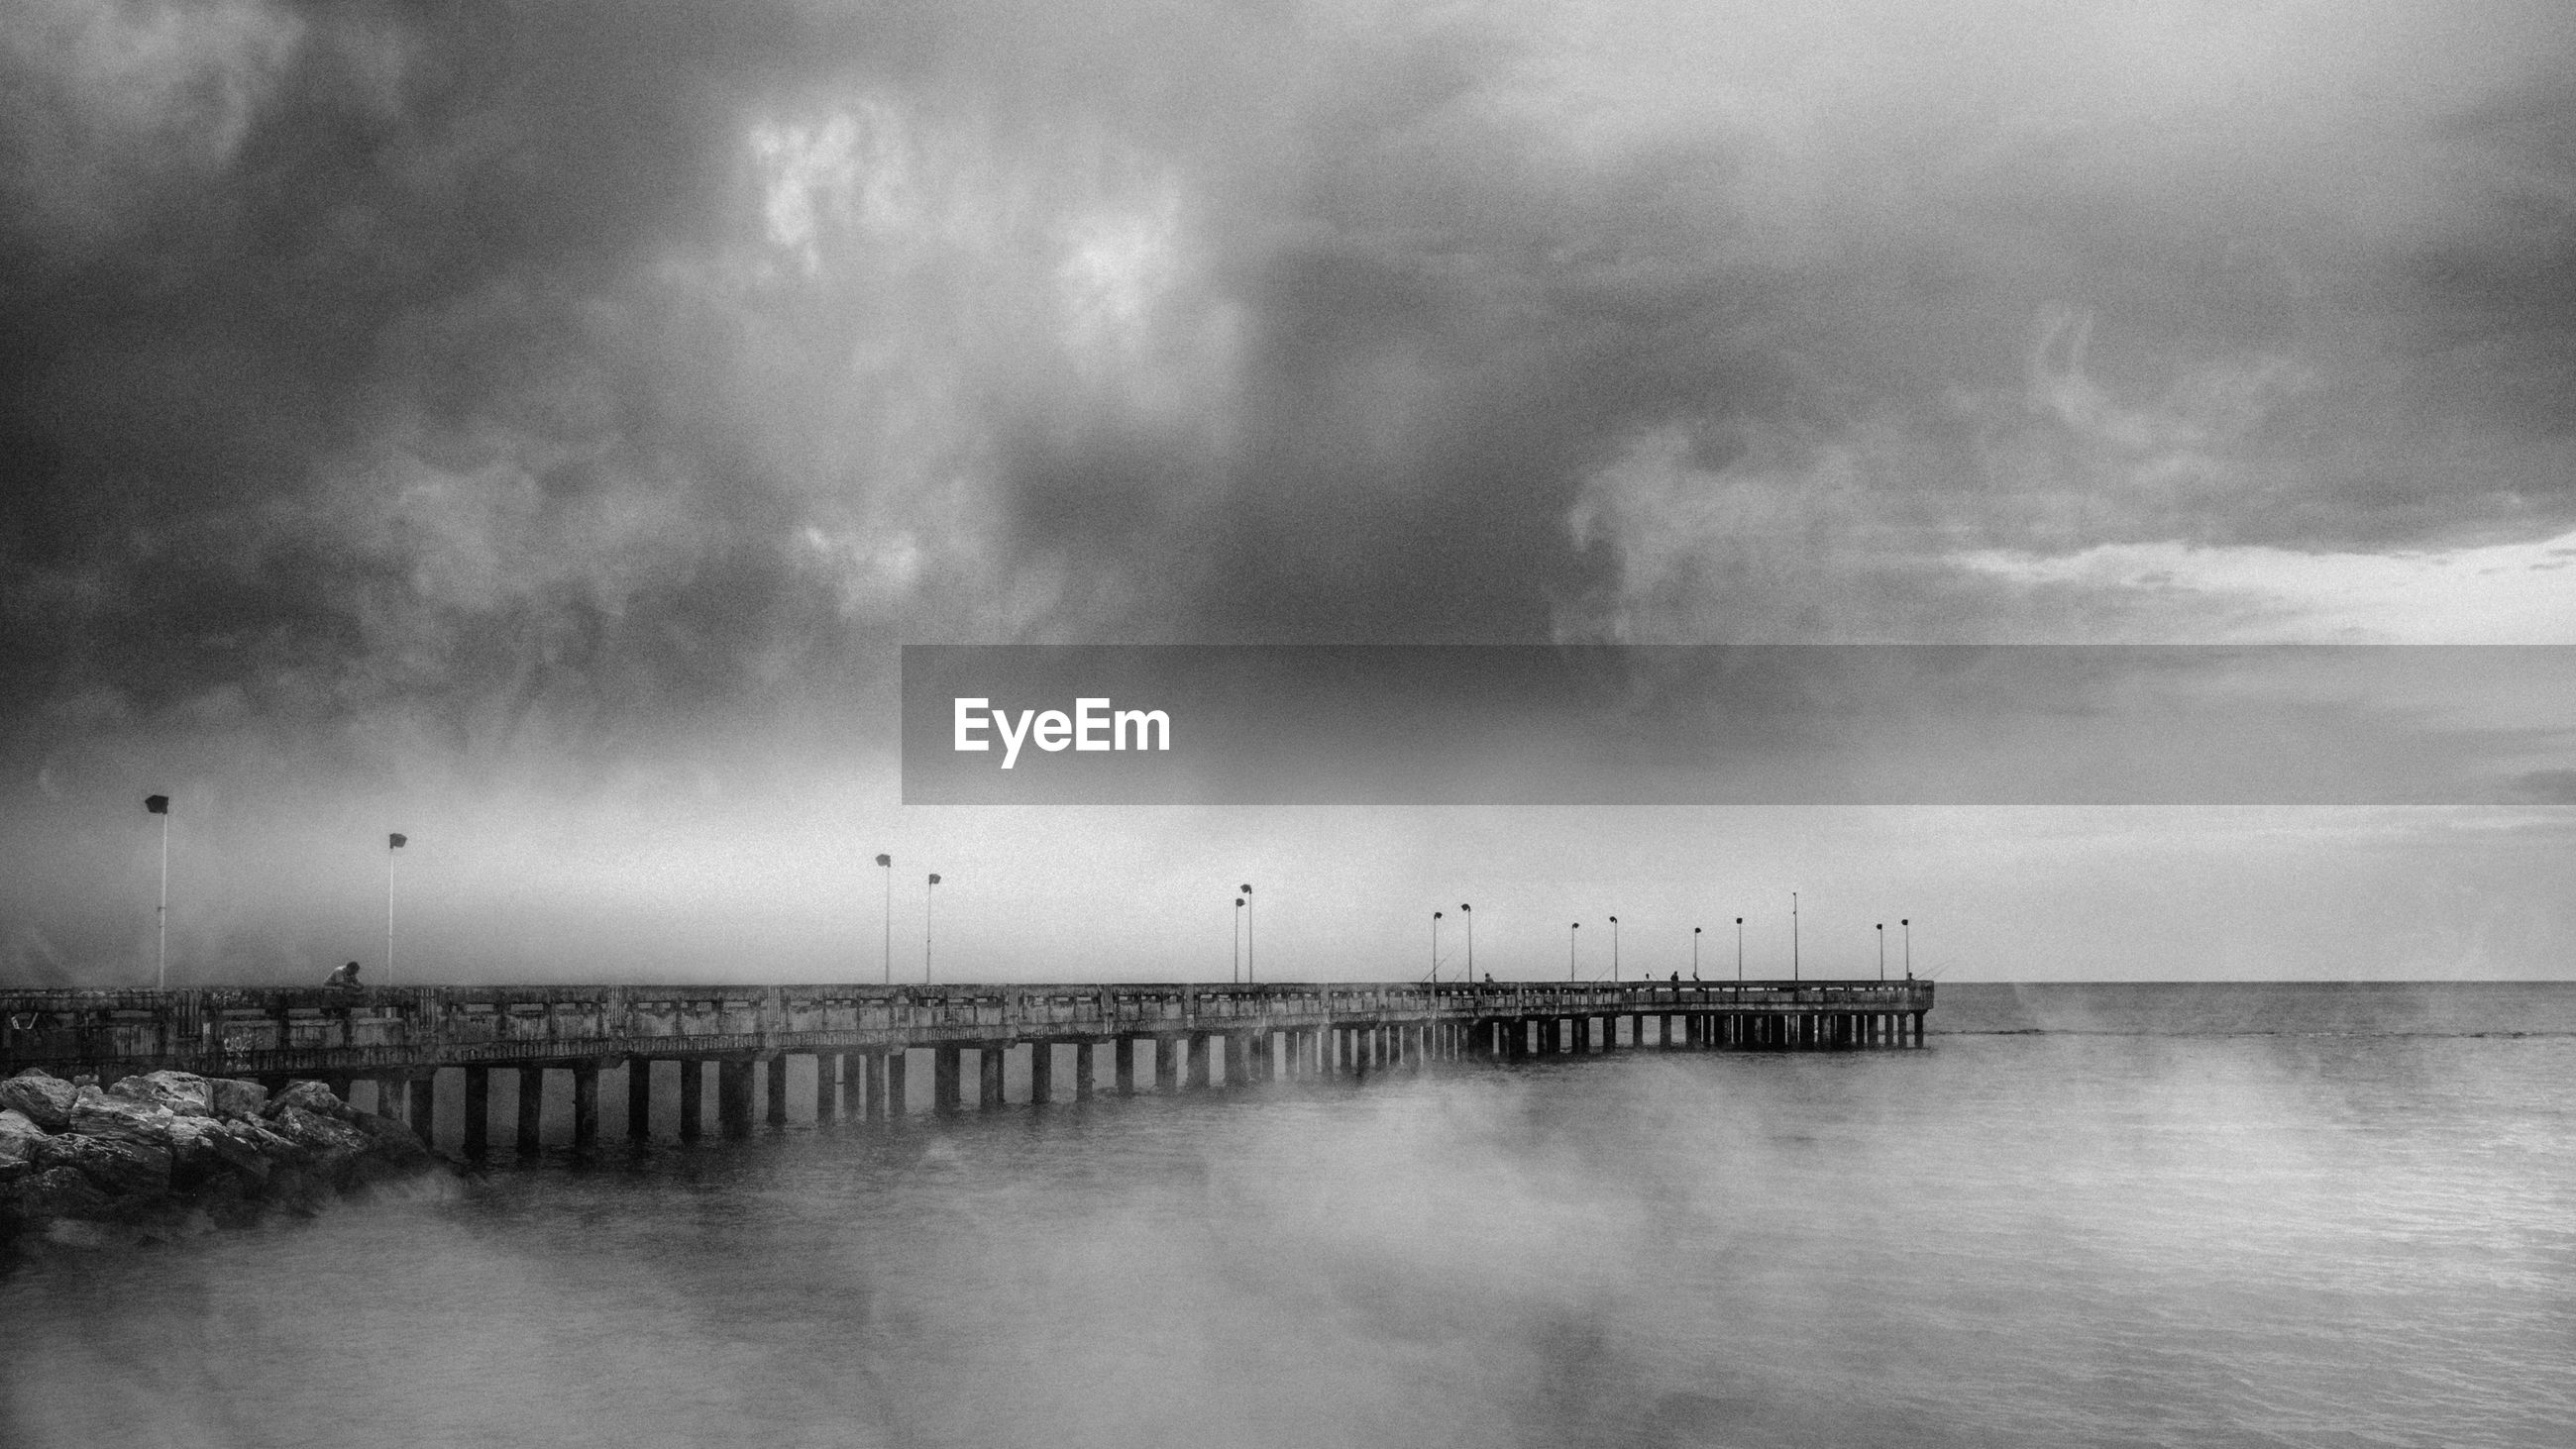 SCENIC VIEW OF PIER OVER SEA AGAINST SKY